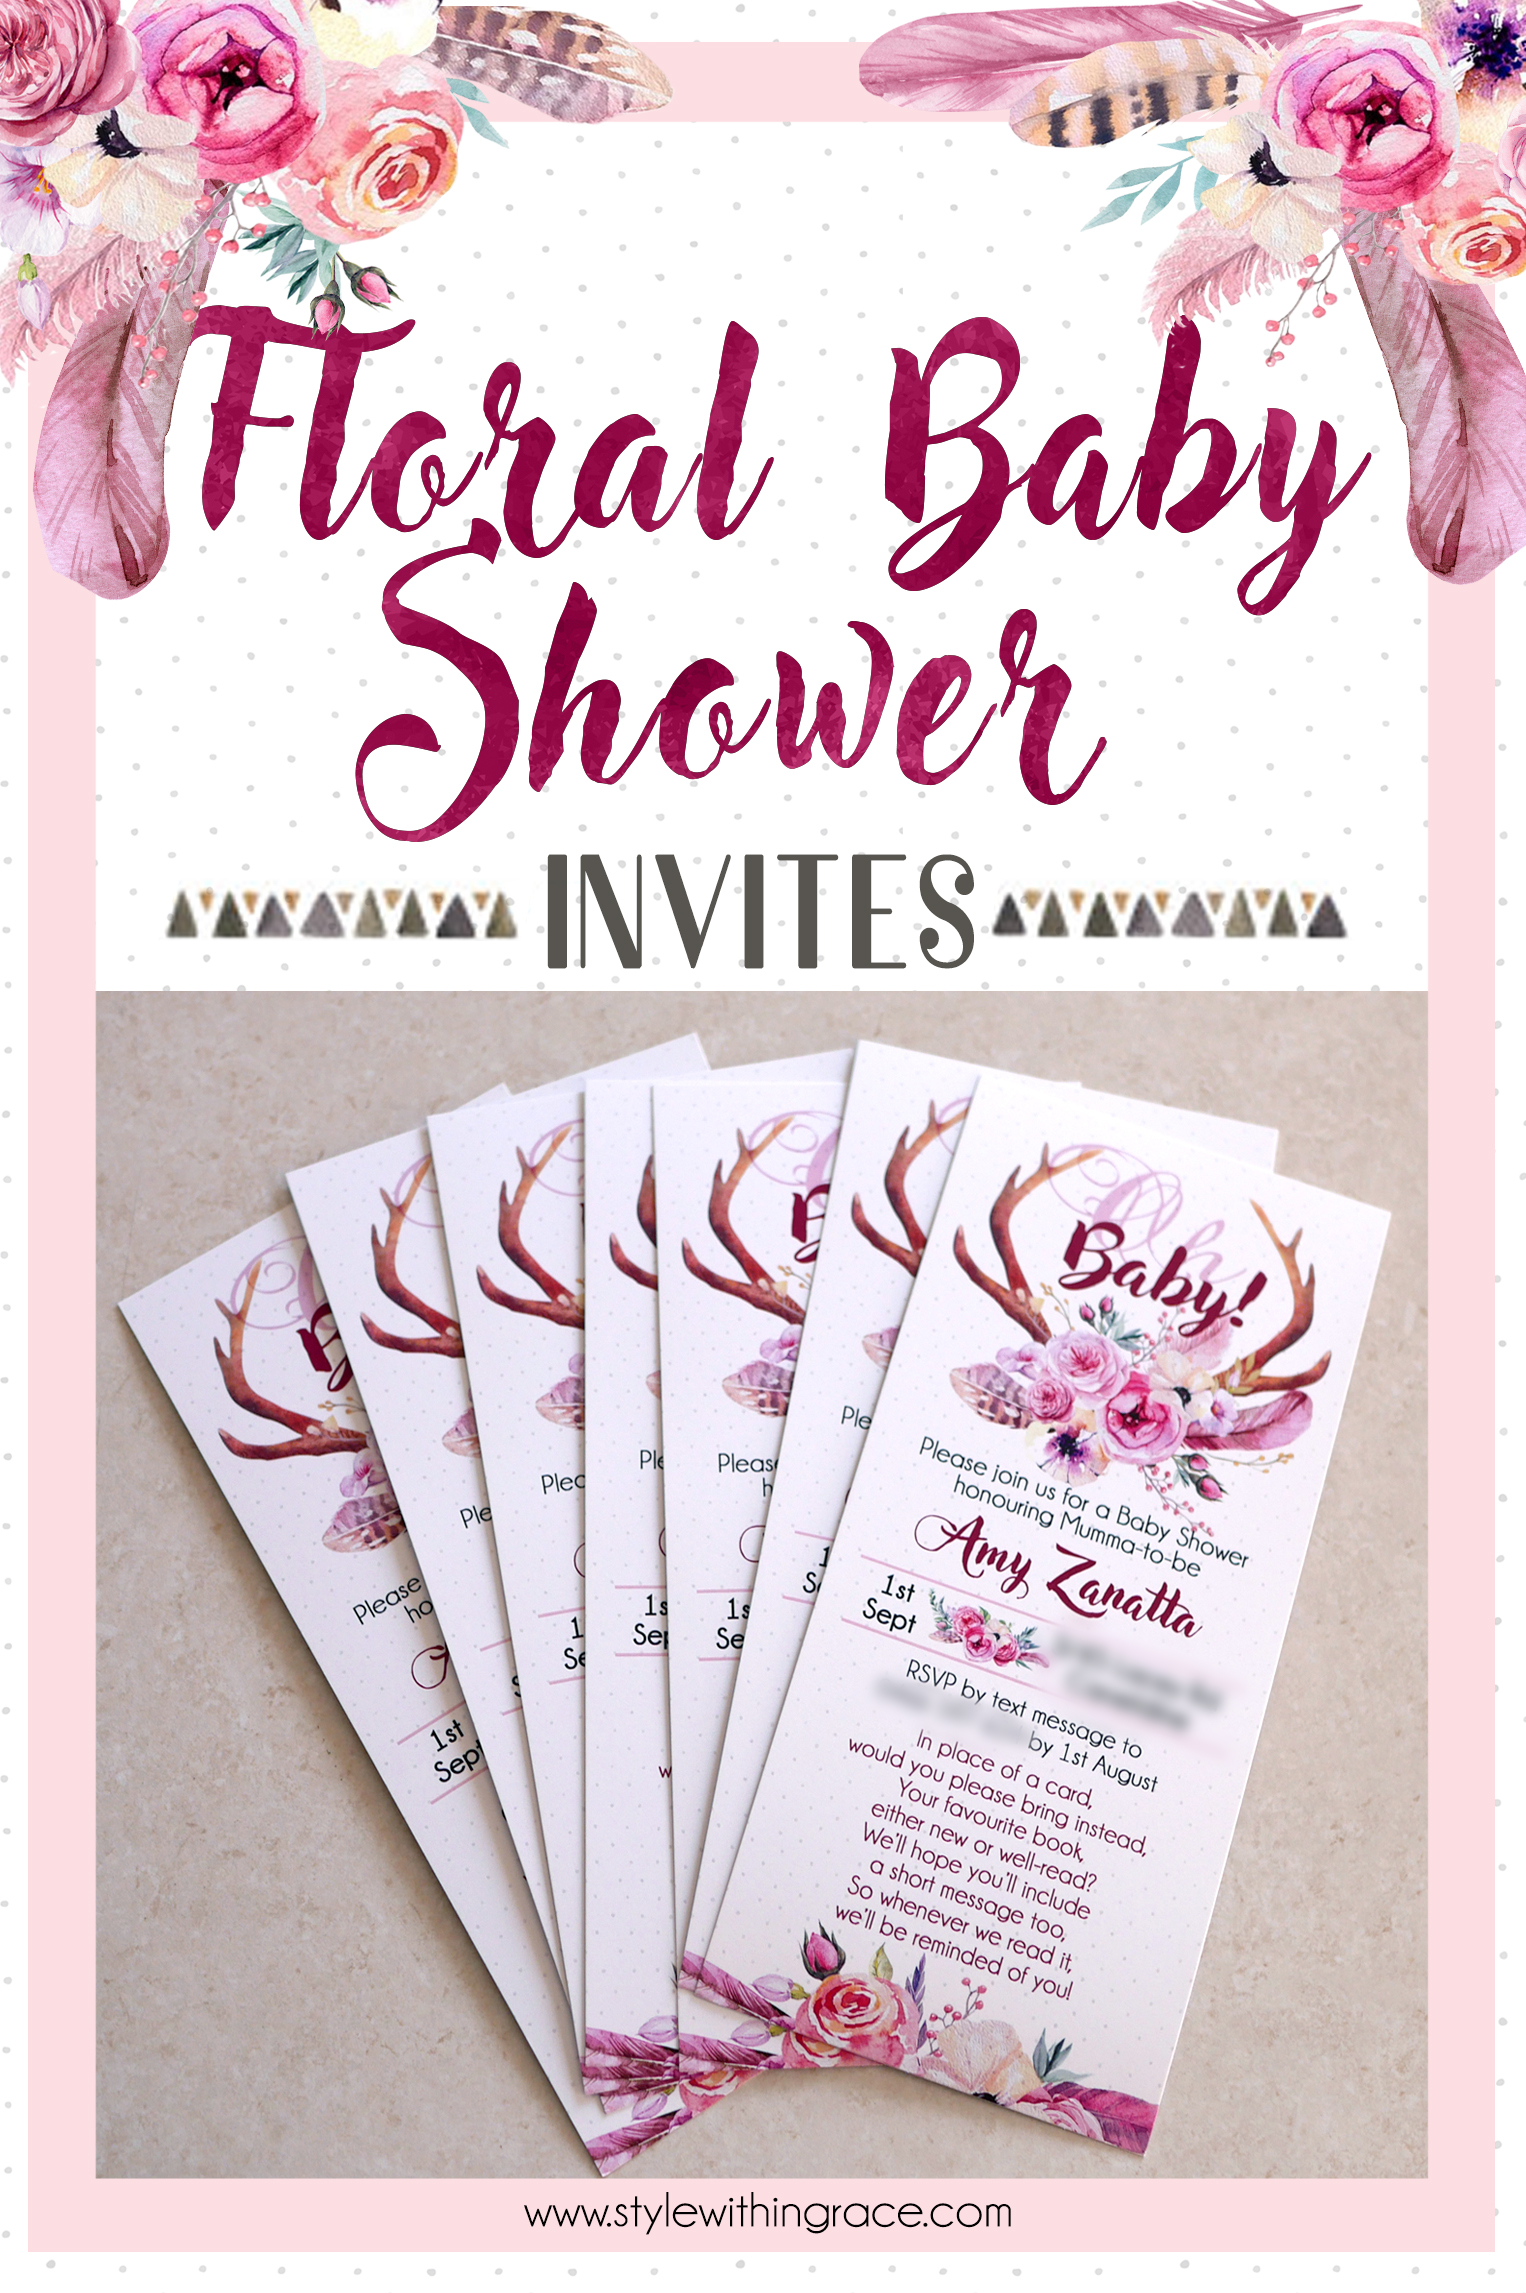 Floral Baby Shower Pinterest Graphic - Invites 01